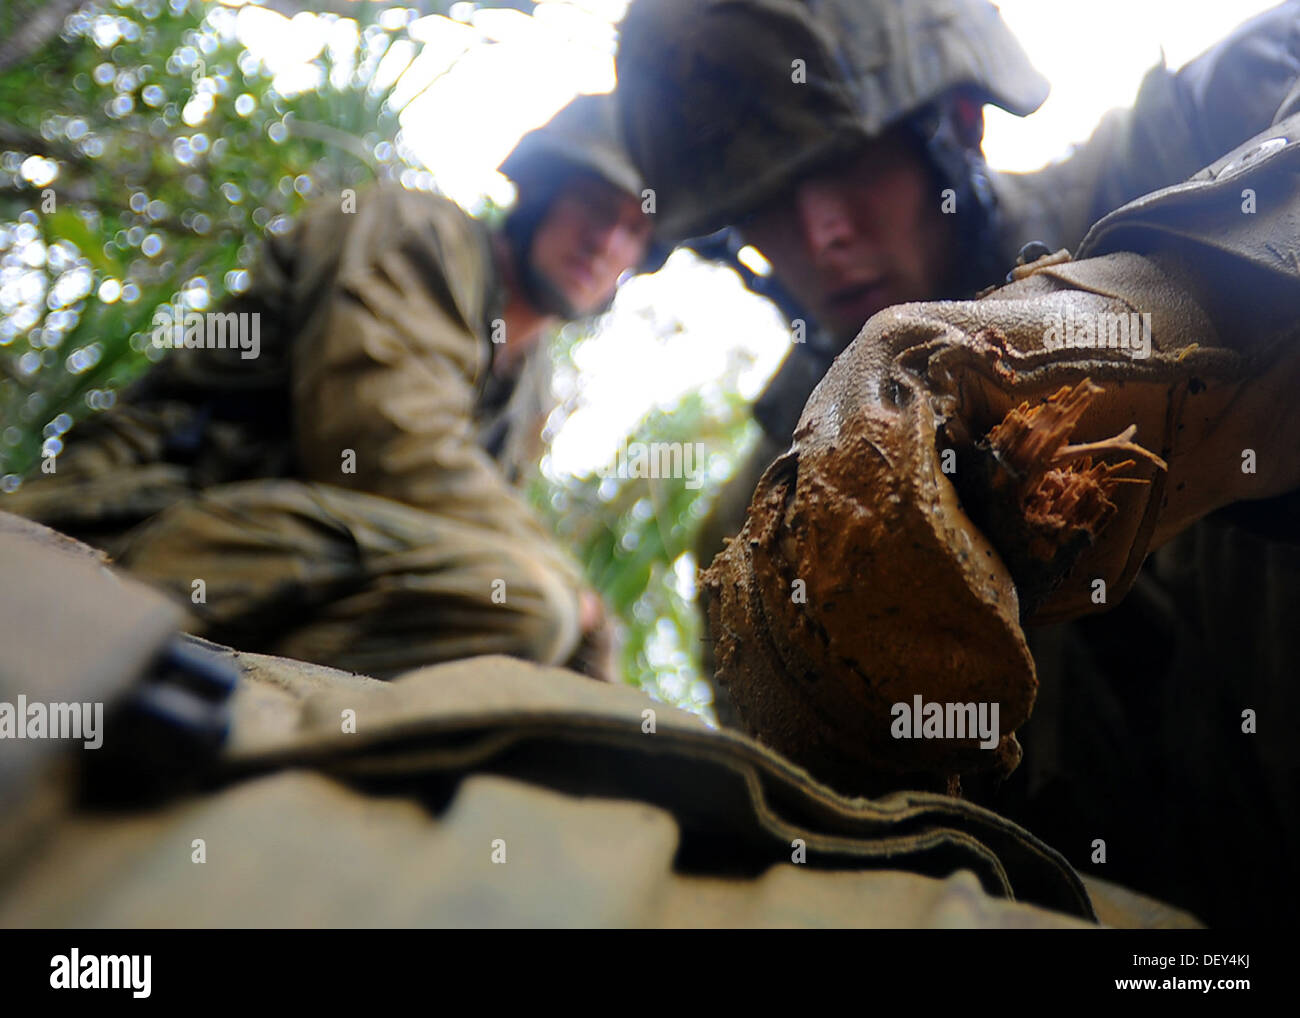 Seabees from Naval Mobile Construction Battalion (NMCB) 3 construct an improvised tourniquet using a broken stick and a belt wh - Stock Image